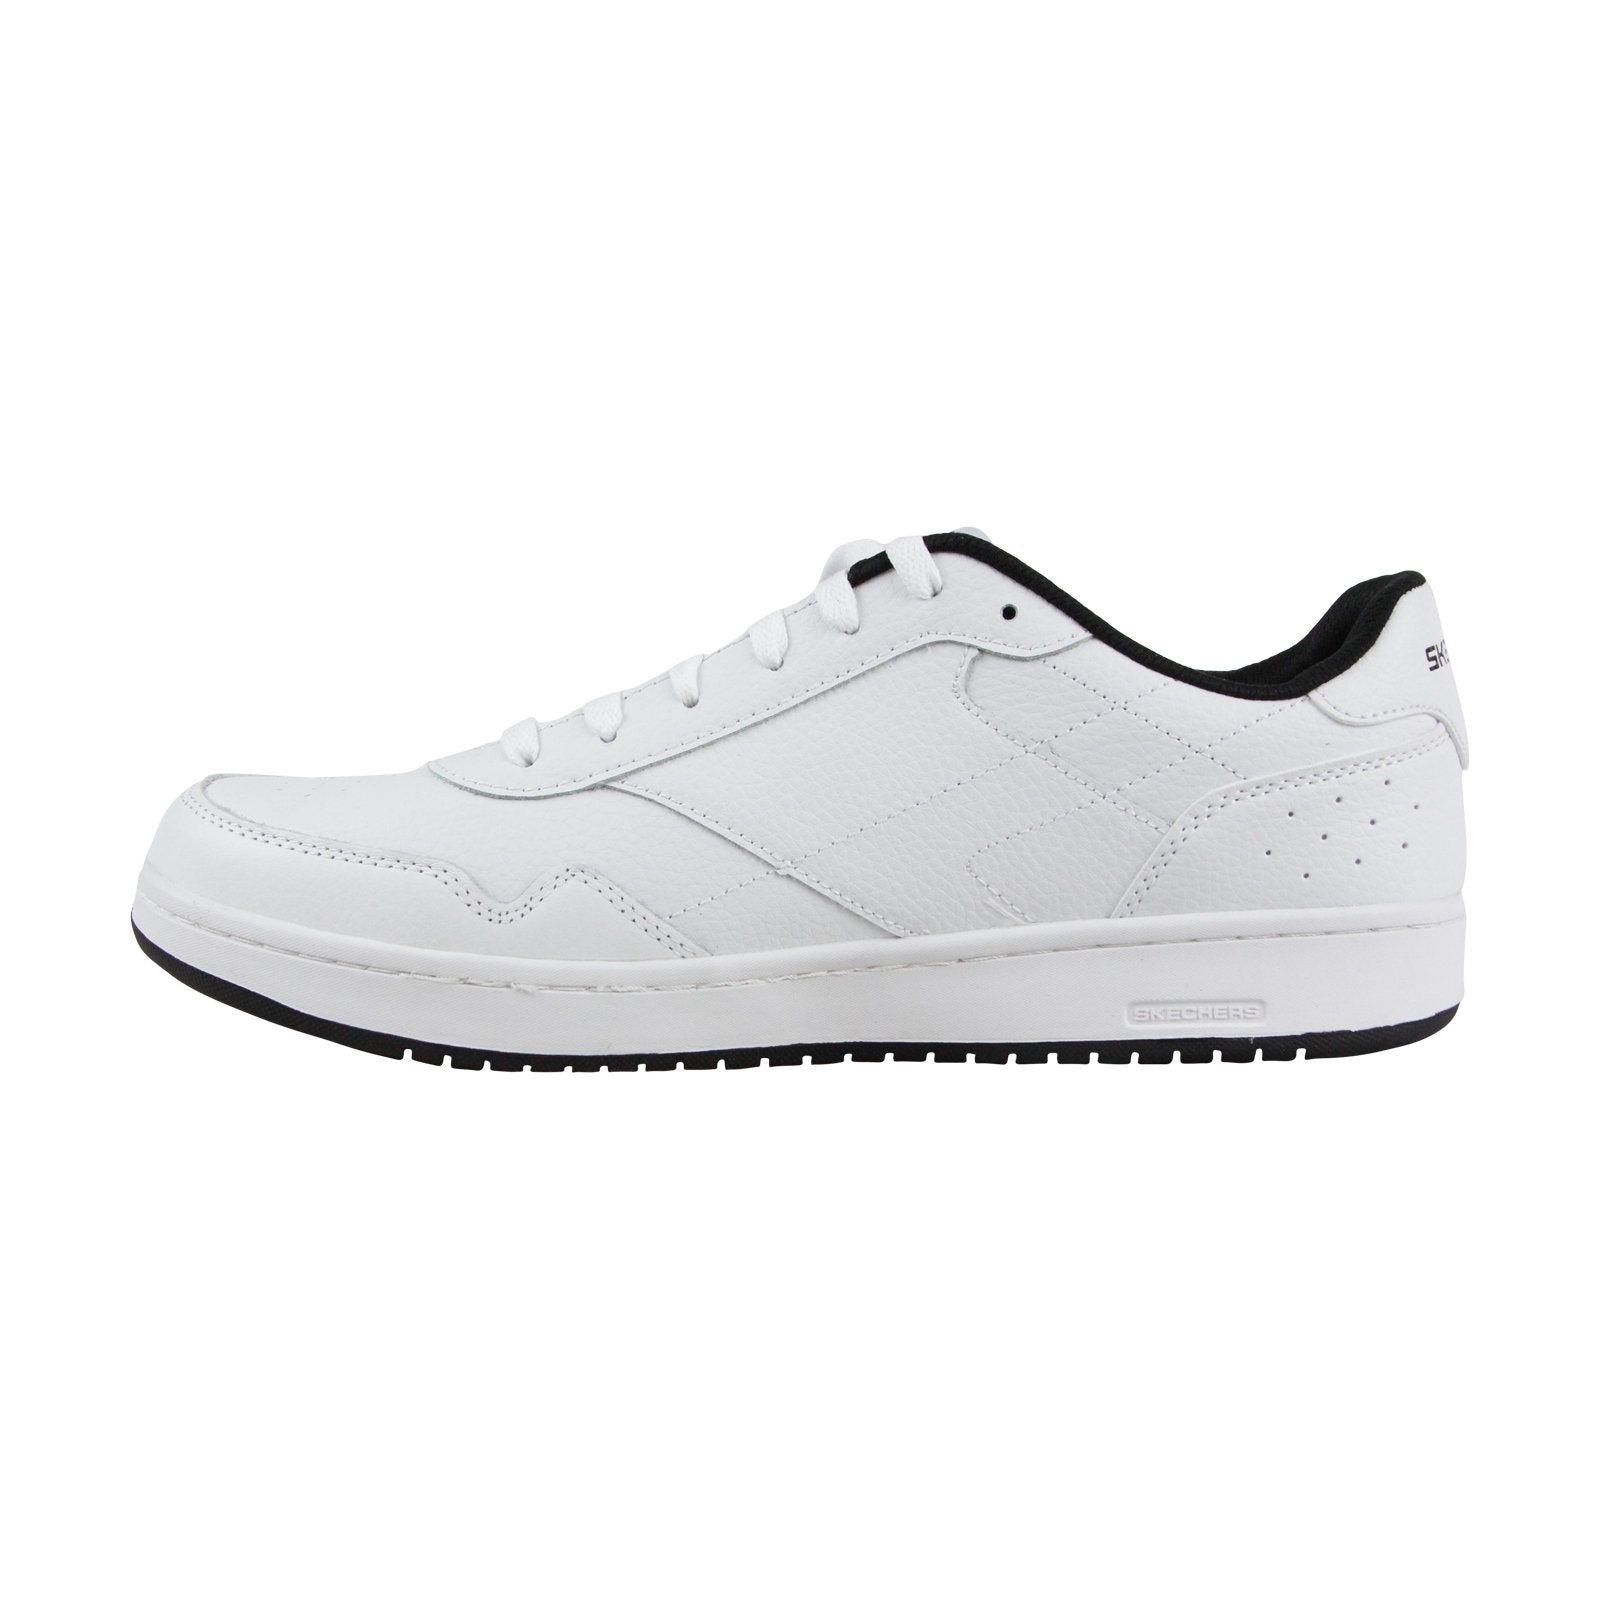 Skechers Tedder Paysted